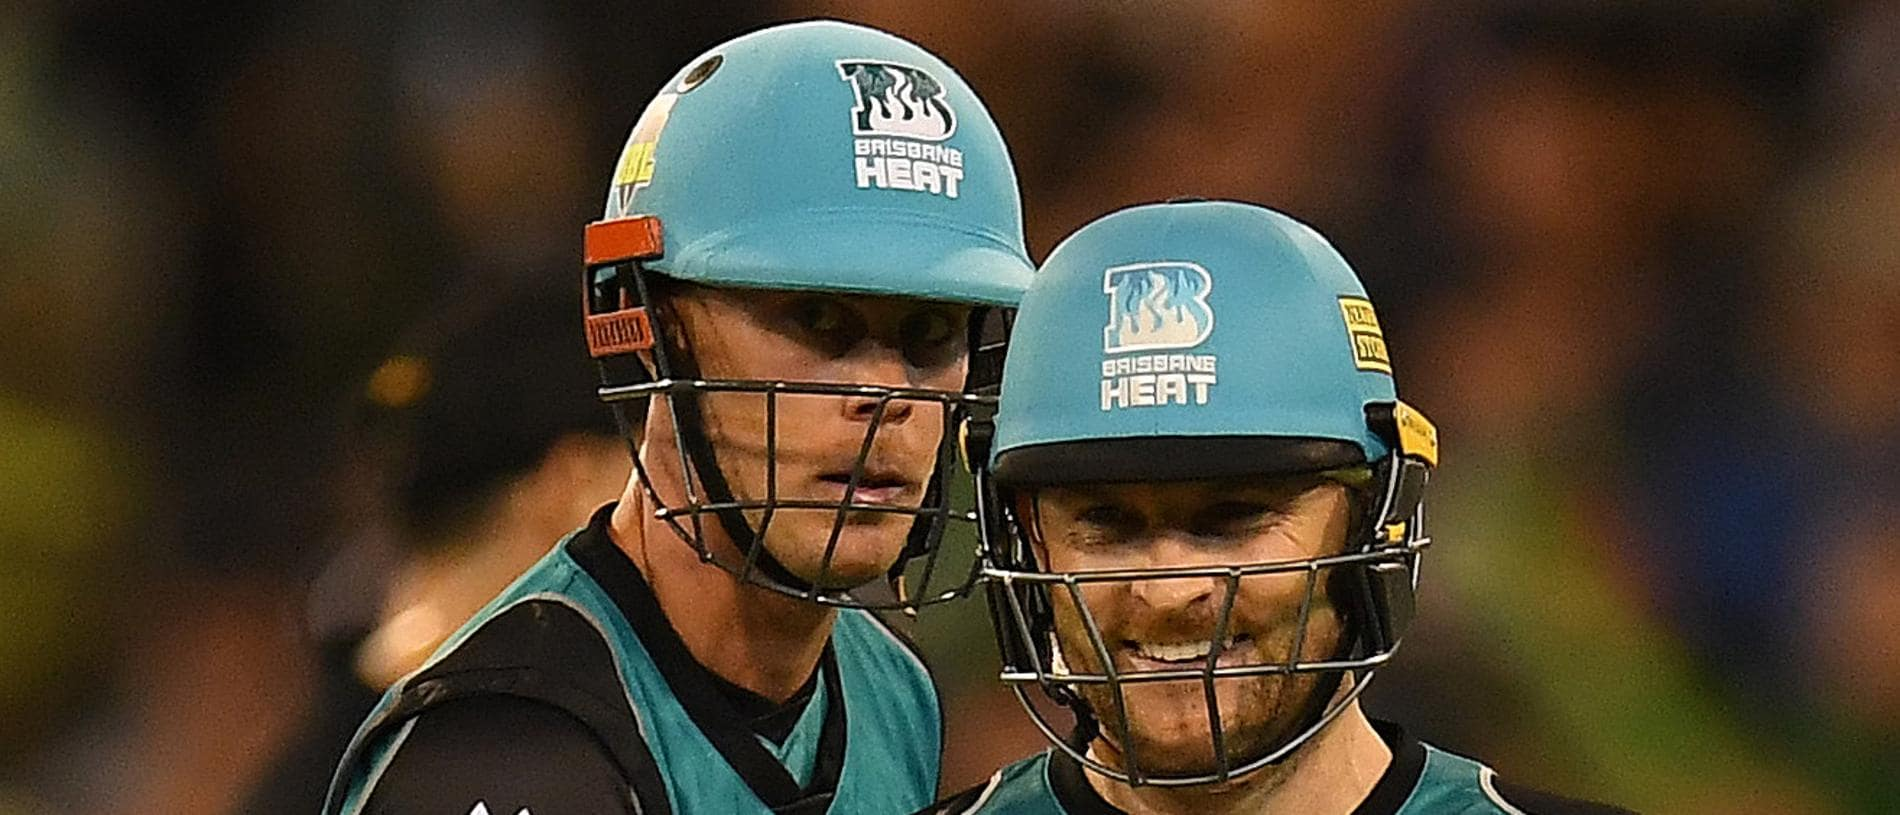 Chris Lynn (left) and Brendon McCullum of the Heat are seen after McCullum was dismissed during the the Big Bash League cricket match between the Melbourne Stars and the Brisbane Heat at the MCG in Melbourne, Tuesday, January 2, 2018. (AAP Image/Julian Smith) NO ARCHIVING, EDITORIAL USE ONLY, IMAGES TO BE USED FOR NEWS REPORTING PURPOSES ONLY, NO COMMERCIAL USE WHATSOEVER, NO USE IN BOOKS WITHOUT PRIOR WRITTEN CONSENT FROM AAP